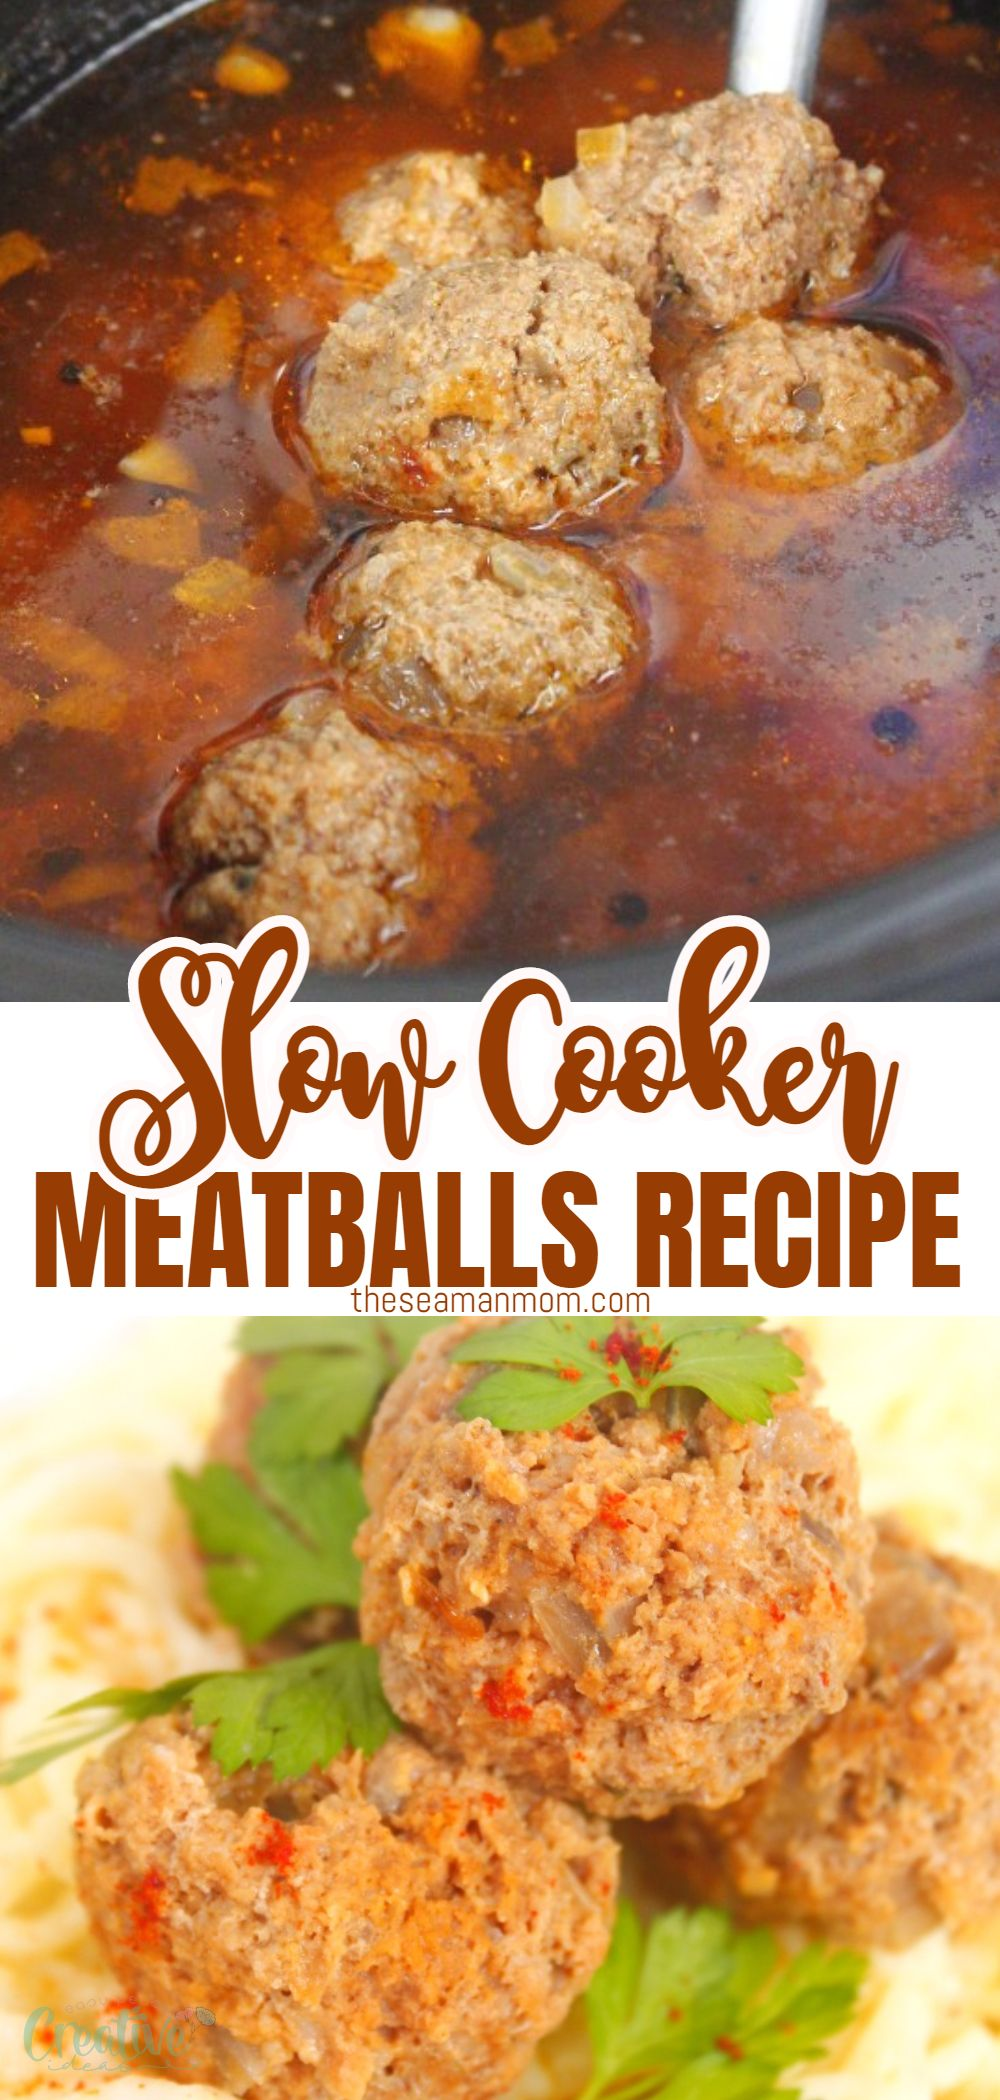 Meatballs are everyone's favorite, and kids especially love them as they are small, tender and really tasty! These slow cooker meatballs are also super-easy to make and a lot healthier than the classic deep-fried version. via @petroneagu